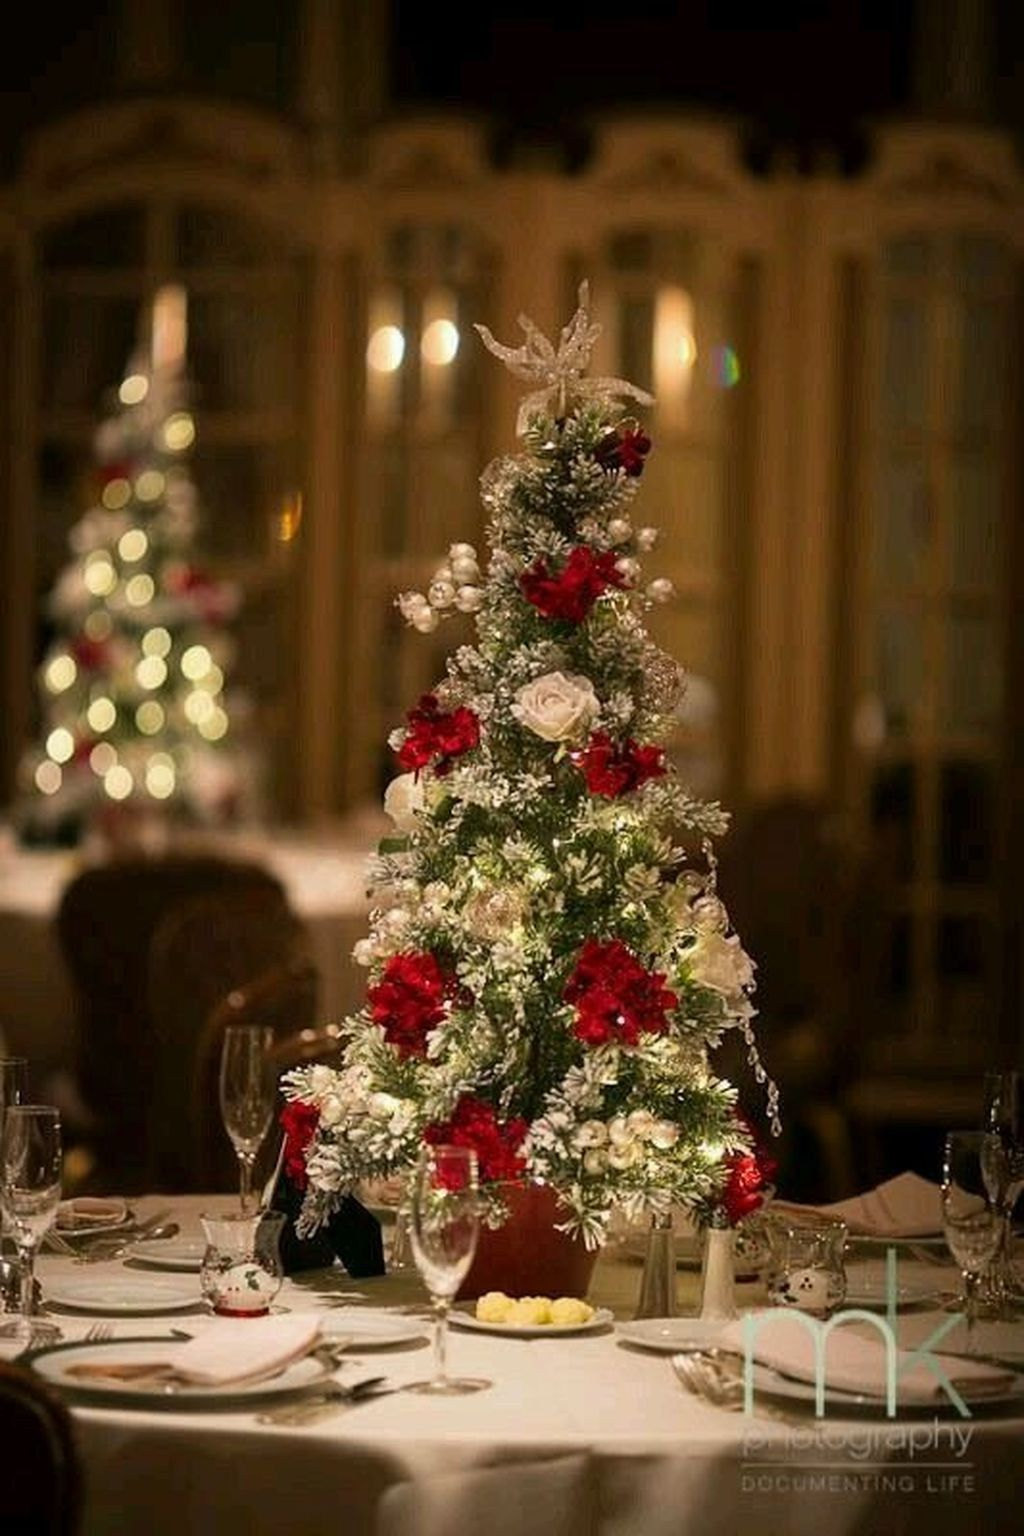 Easy And Simple Christmas Table Centerpieces Ideas For Your Dining Room 08 Christmas Wedding Centerpieces Winter Wedding Centerpieces Tree Wedding Centerpieces